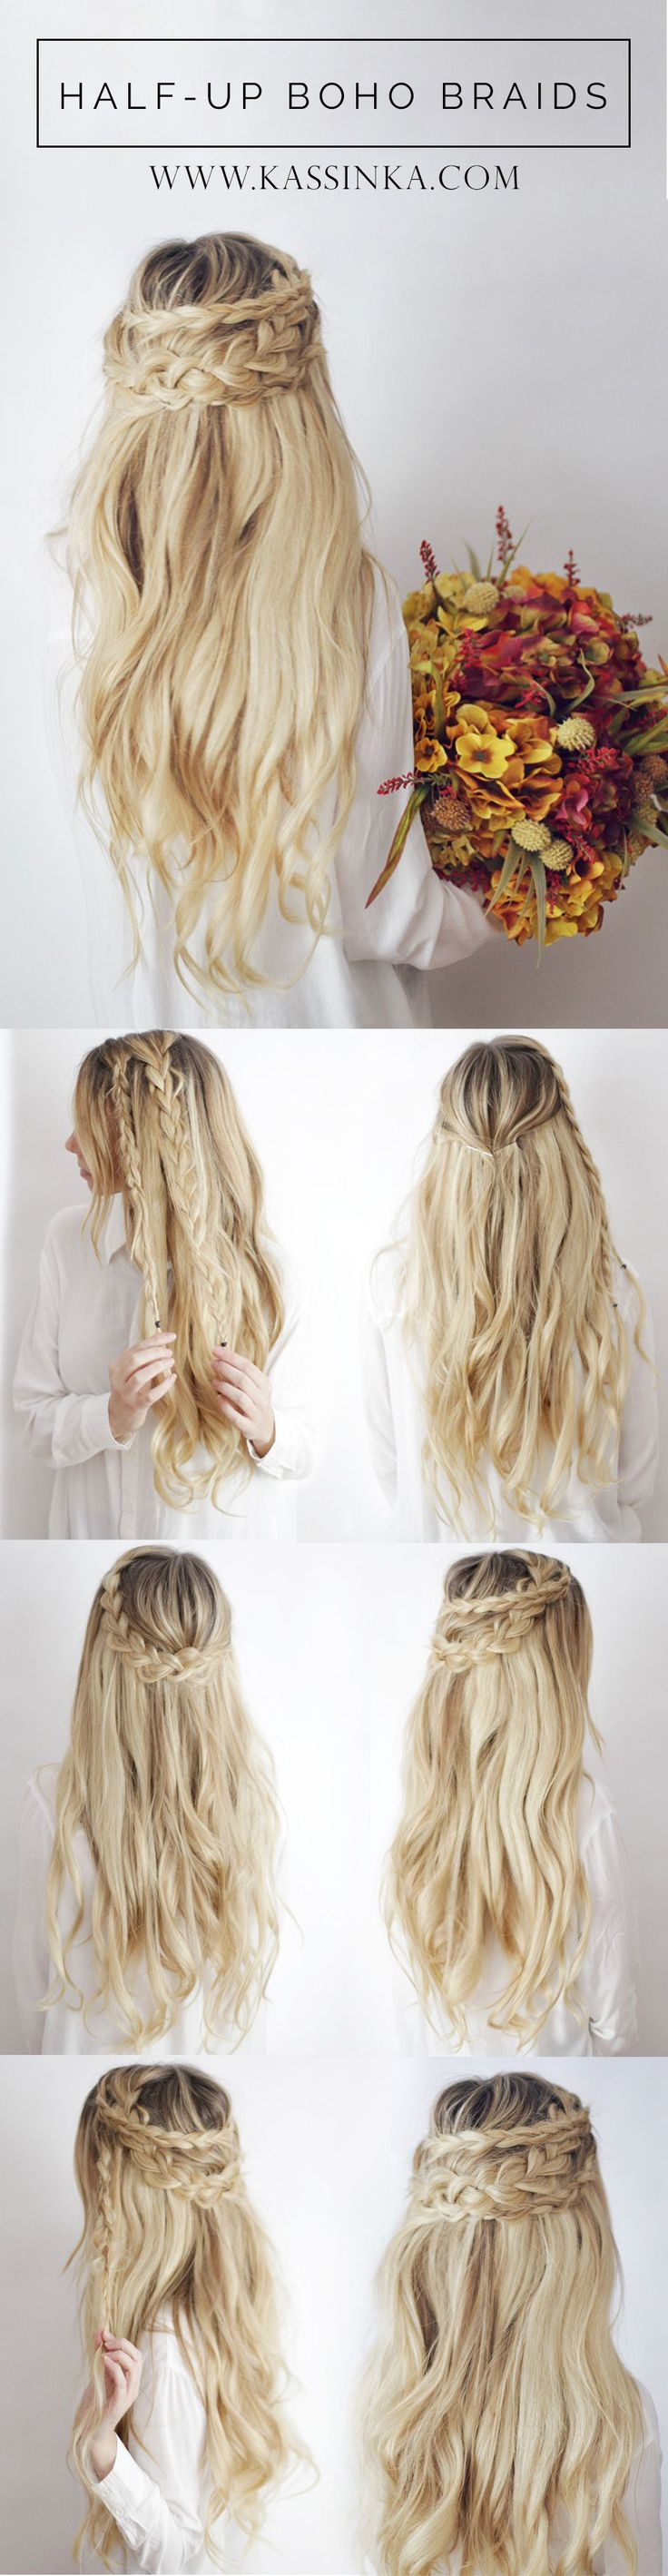 220 best mrkateinspo HAIR images on Pinterest